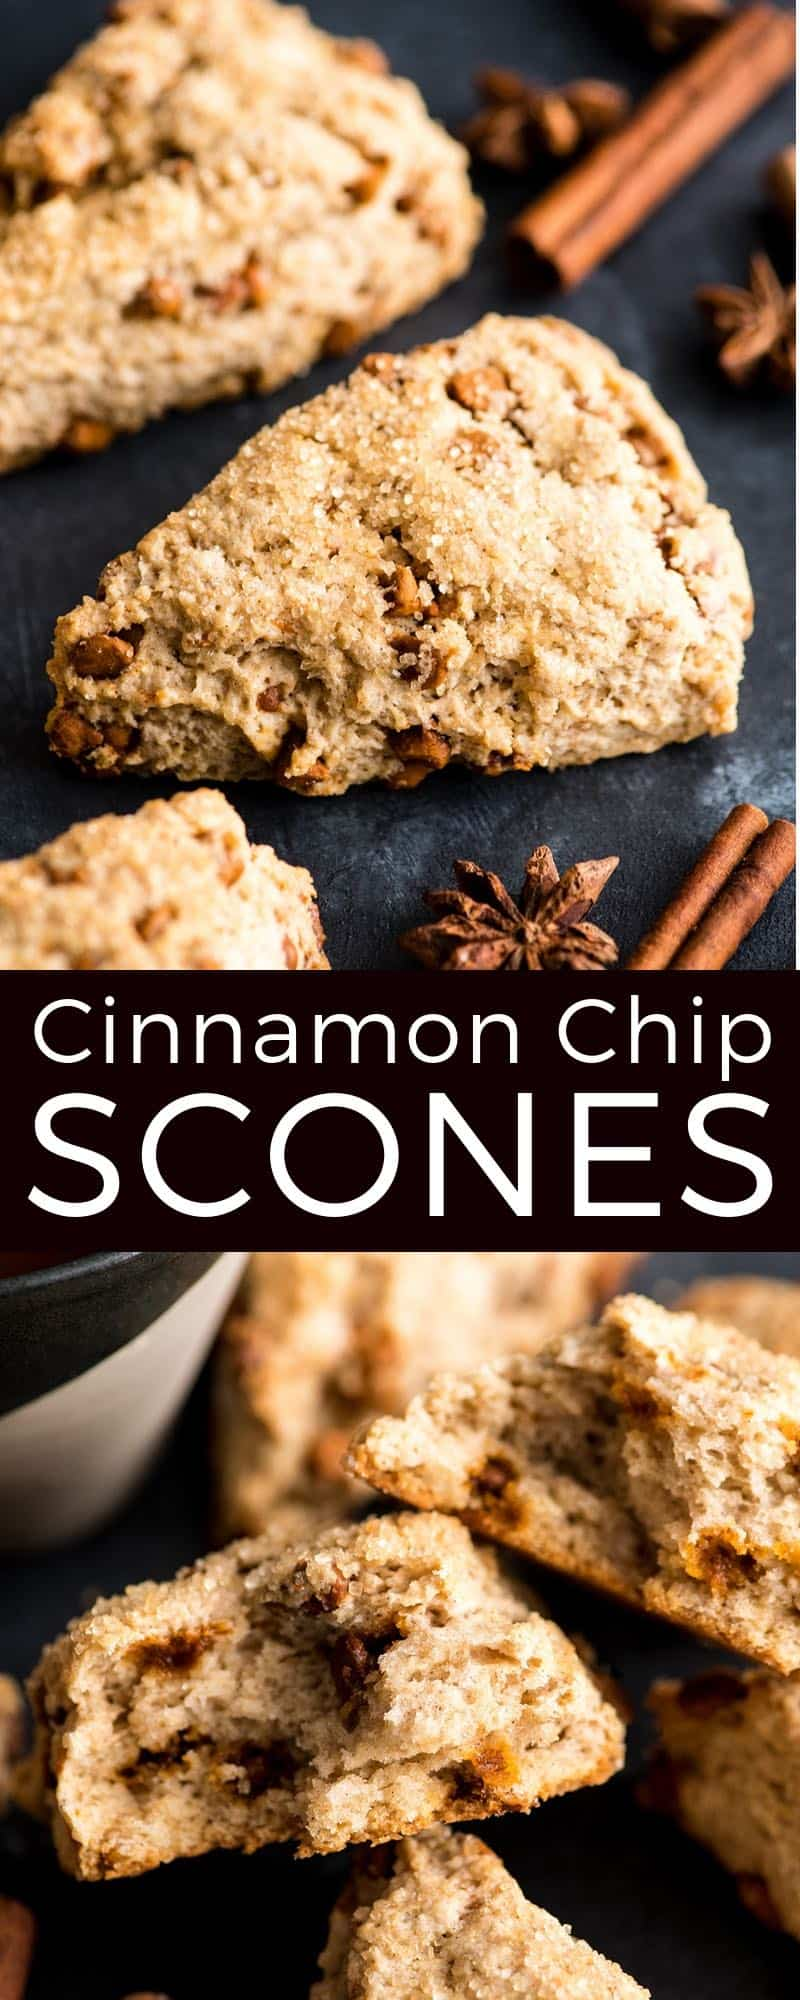 The best EVER Homemade Cinnamon Scones Recipe (with Cinnamon Chips)! These cinnamon chip scones are buttery & moist, easy to make for breakfast or brunch, and are even better than Starbucks & Panera! Perfect to enjoy with a cup of coffee in the mornings! #scones #cinnamonchips #starbucks #panera #cinnamonscones #baking #recipe